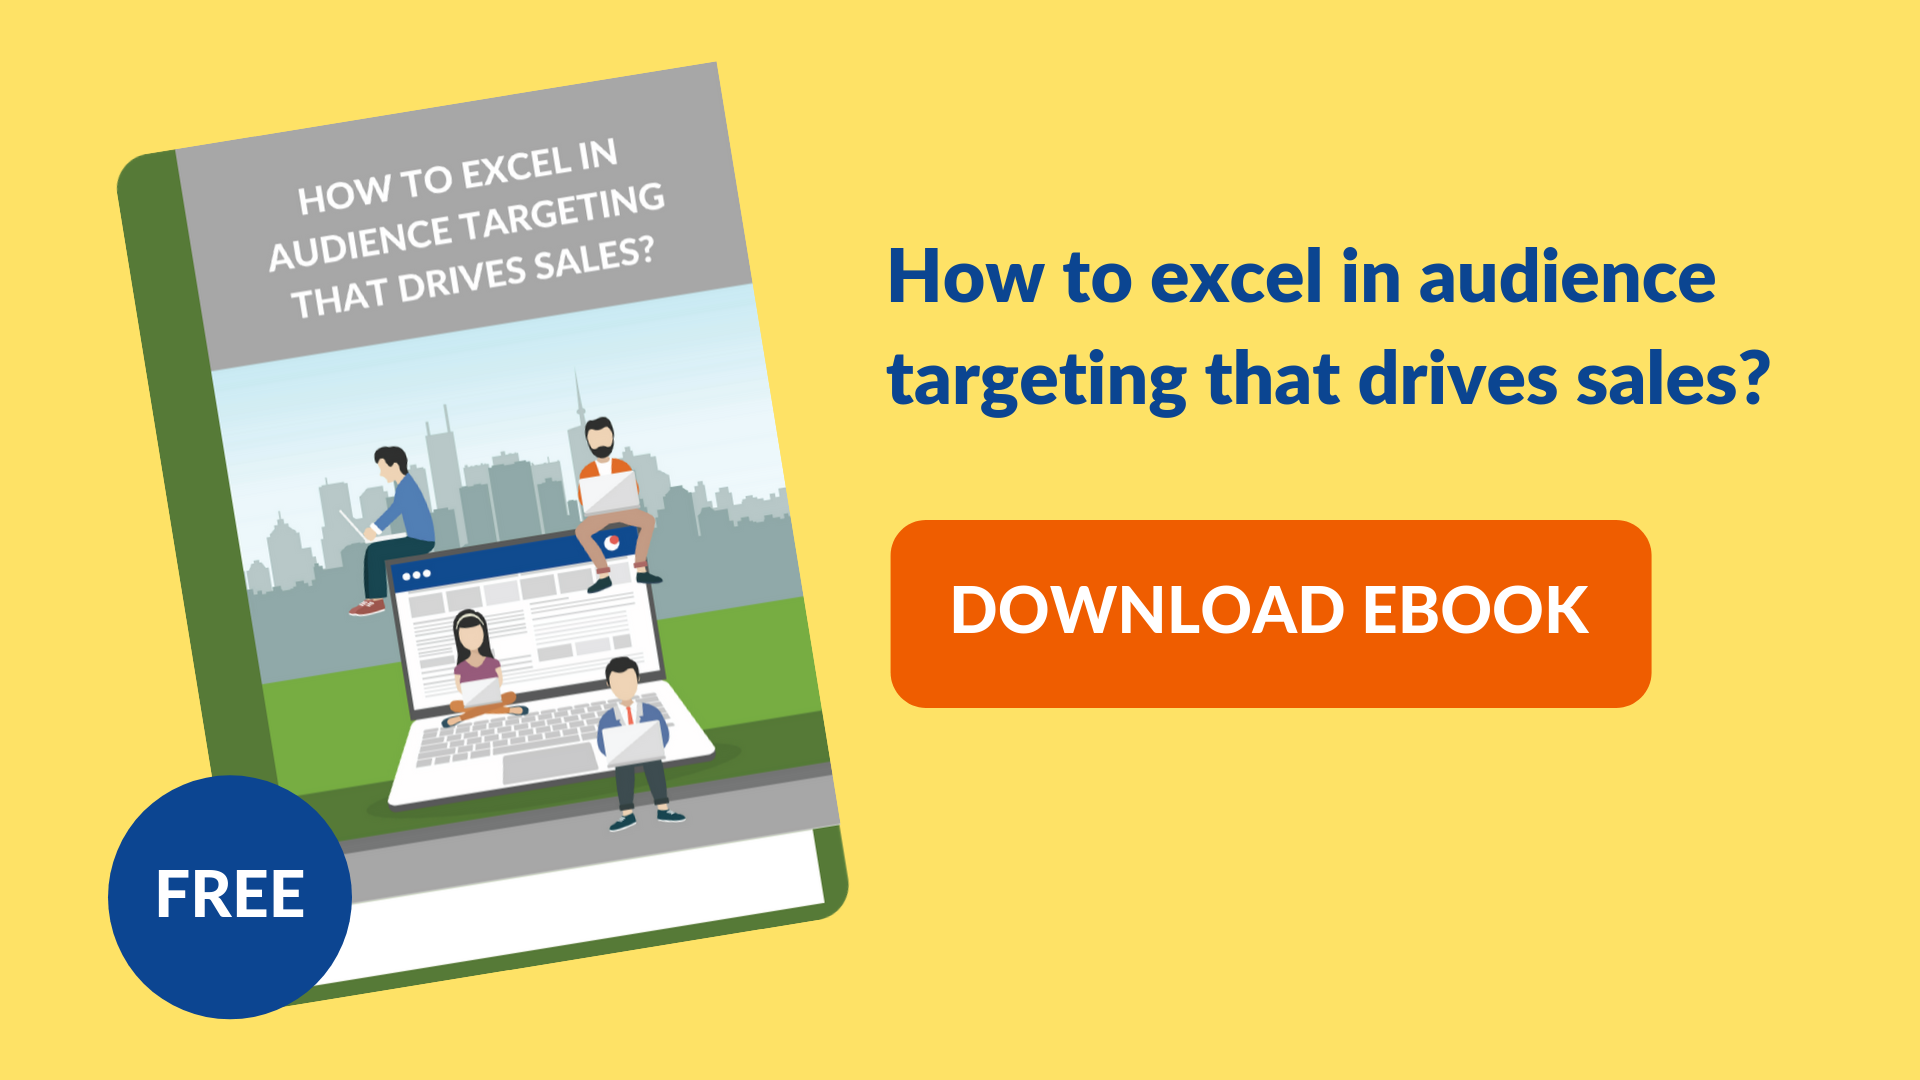 Download free eBook: How to excel in audience targeting that drives sales